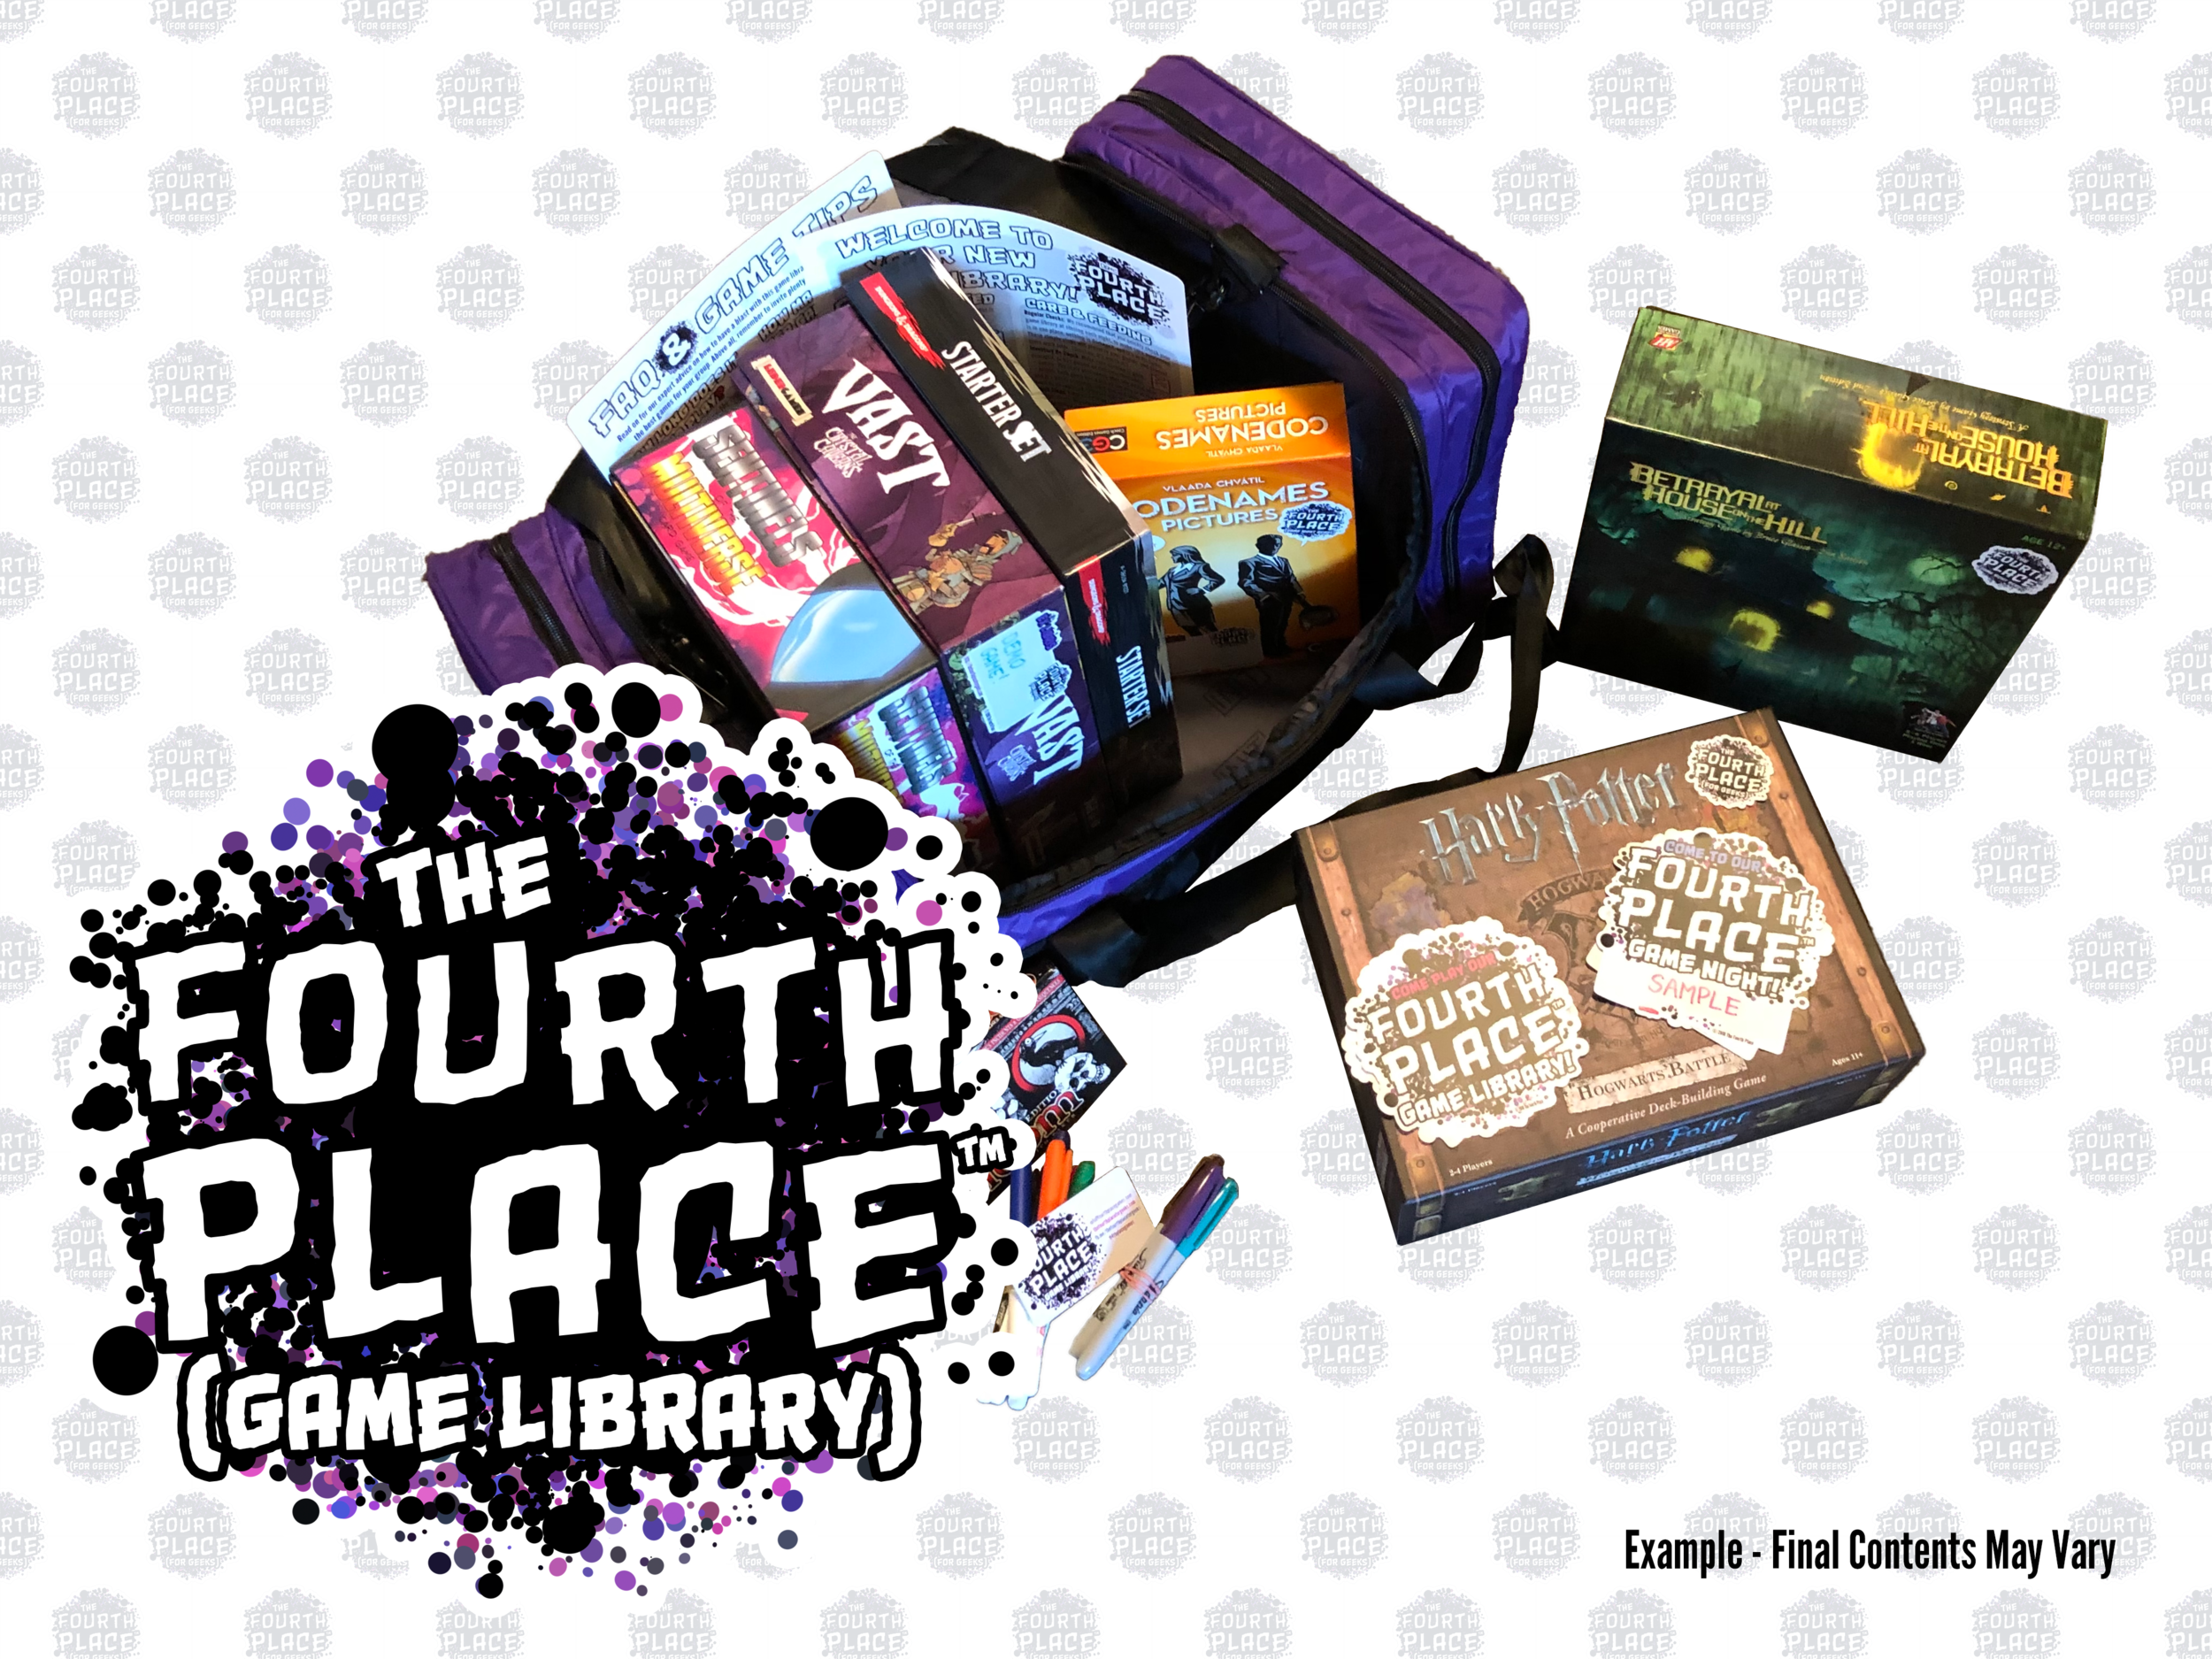 Board Game Night (In a Bag) for Businesses